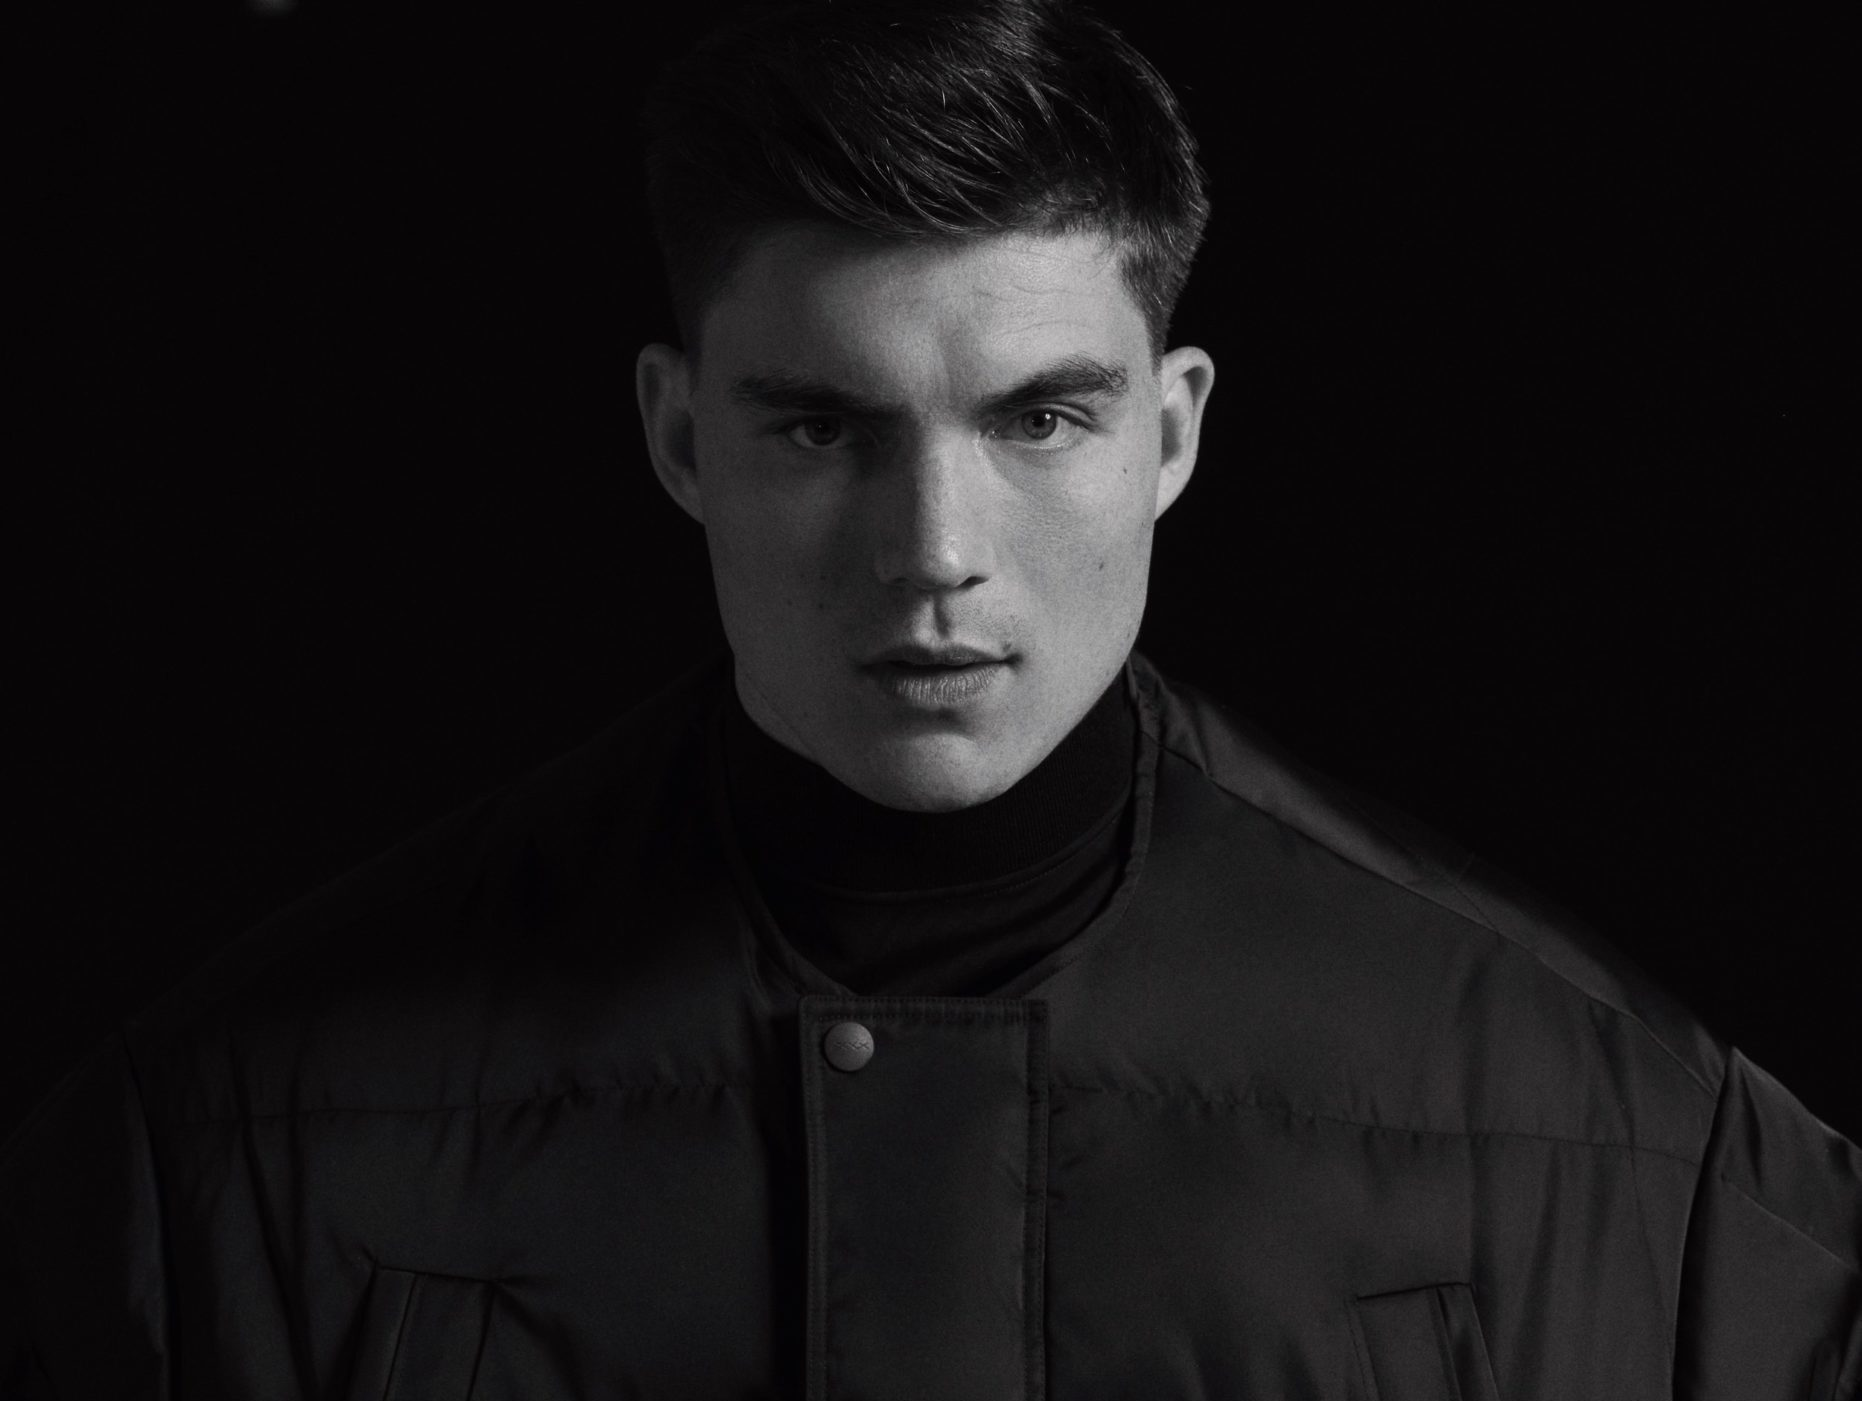 191109 EGH ZaneHoltz Look 04 033 1 scaled e1587663575355 - fashion, face-time - Zane Holtz -  - Zane Holtz